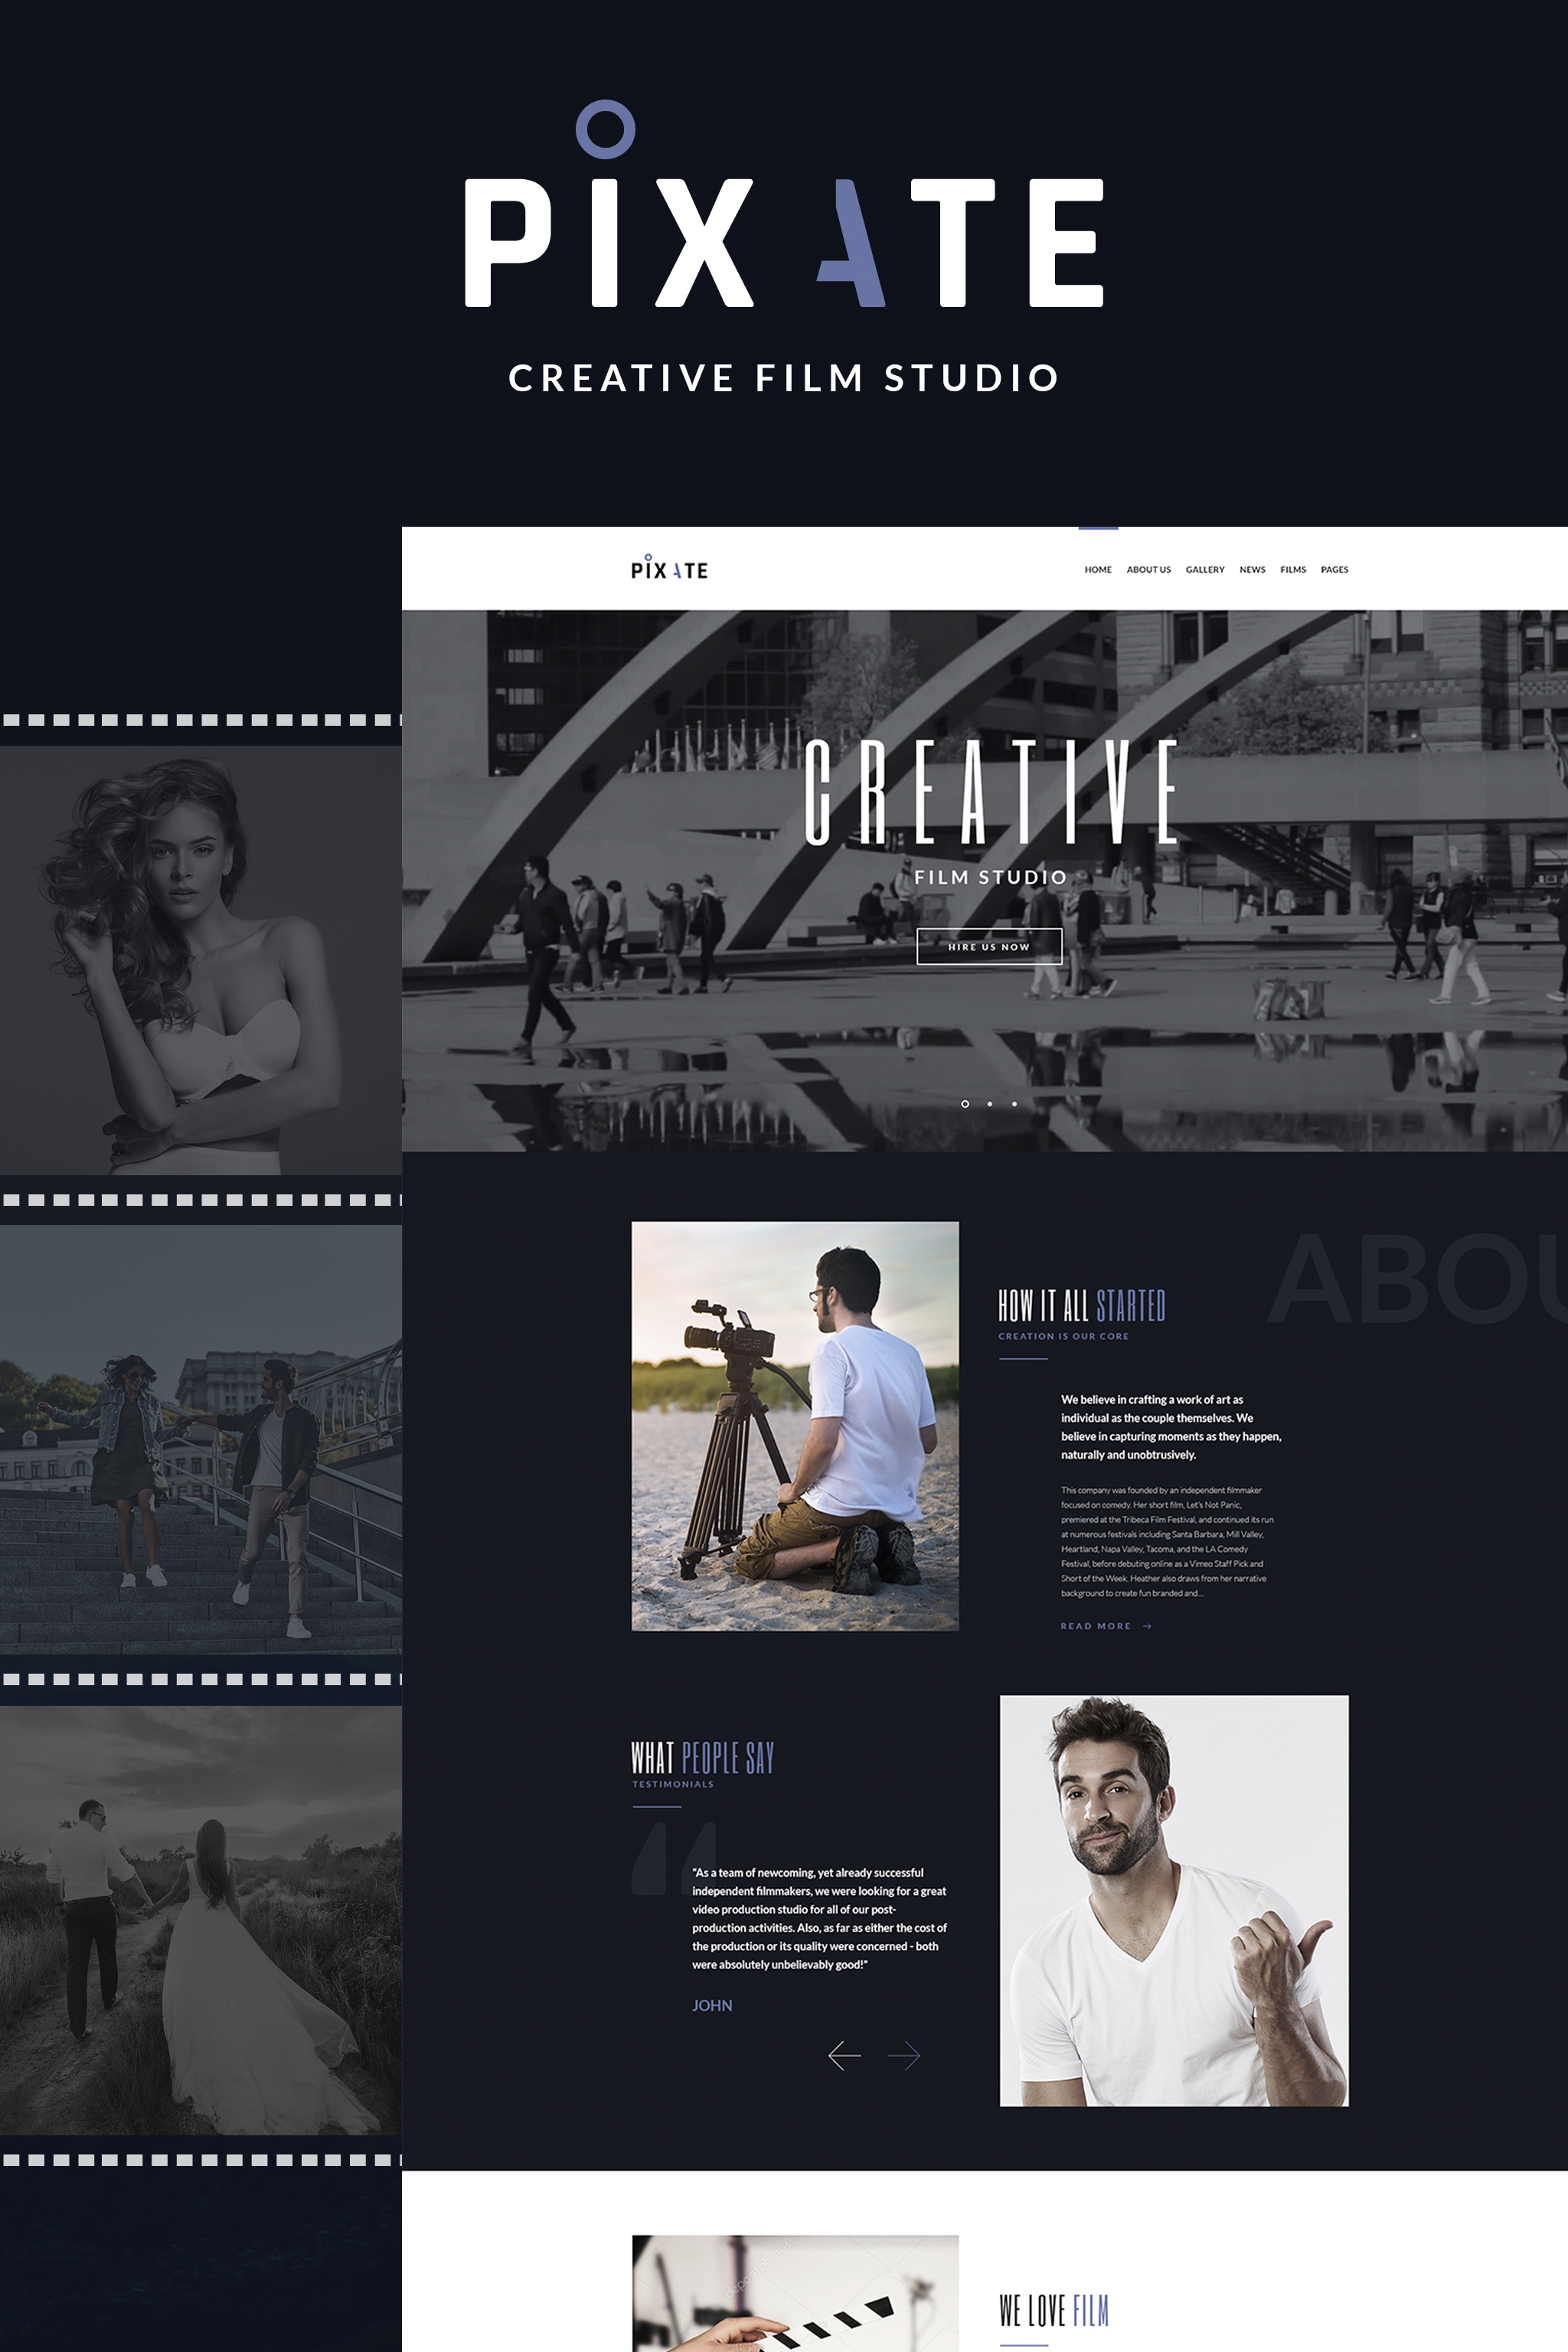 """Pixate - Movie Studio WordPress Theme"" 响应式WordPress模板 #65159 - 截图"